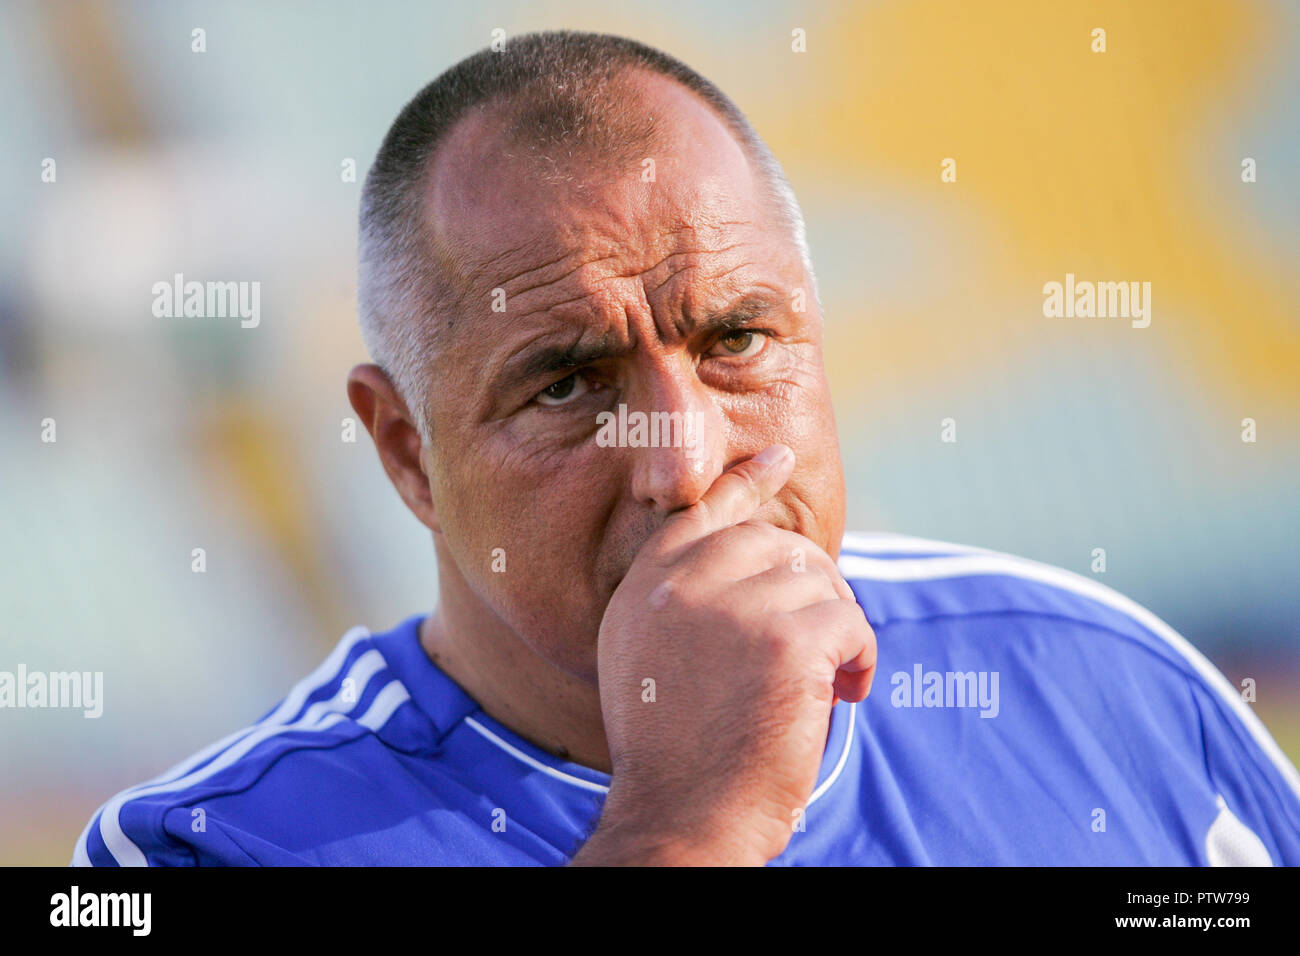 SOFIA, BULGARIA - 08 SEPTEMBER 2011: Bulgarian prime minister Boyko Borisov touching his nose during charitable football match in Sofia, Bulgaria, Sep - Stock Image